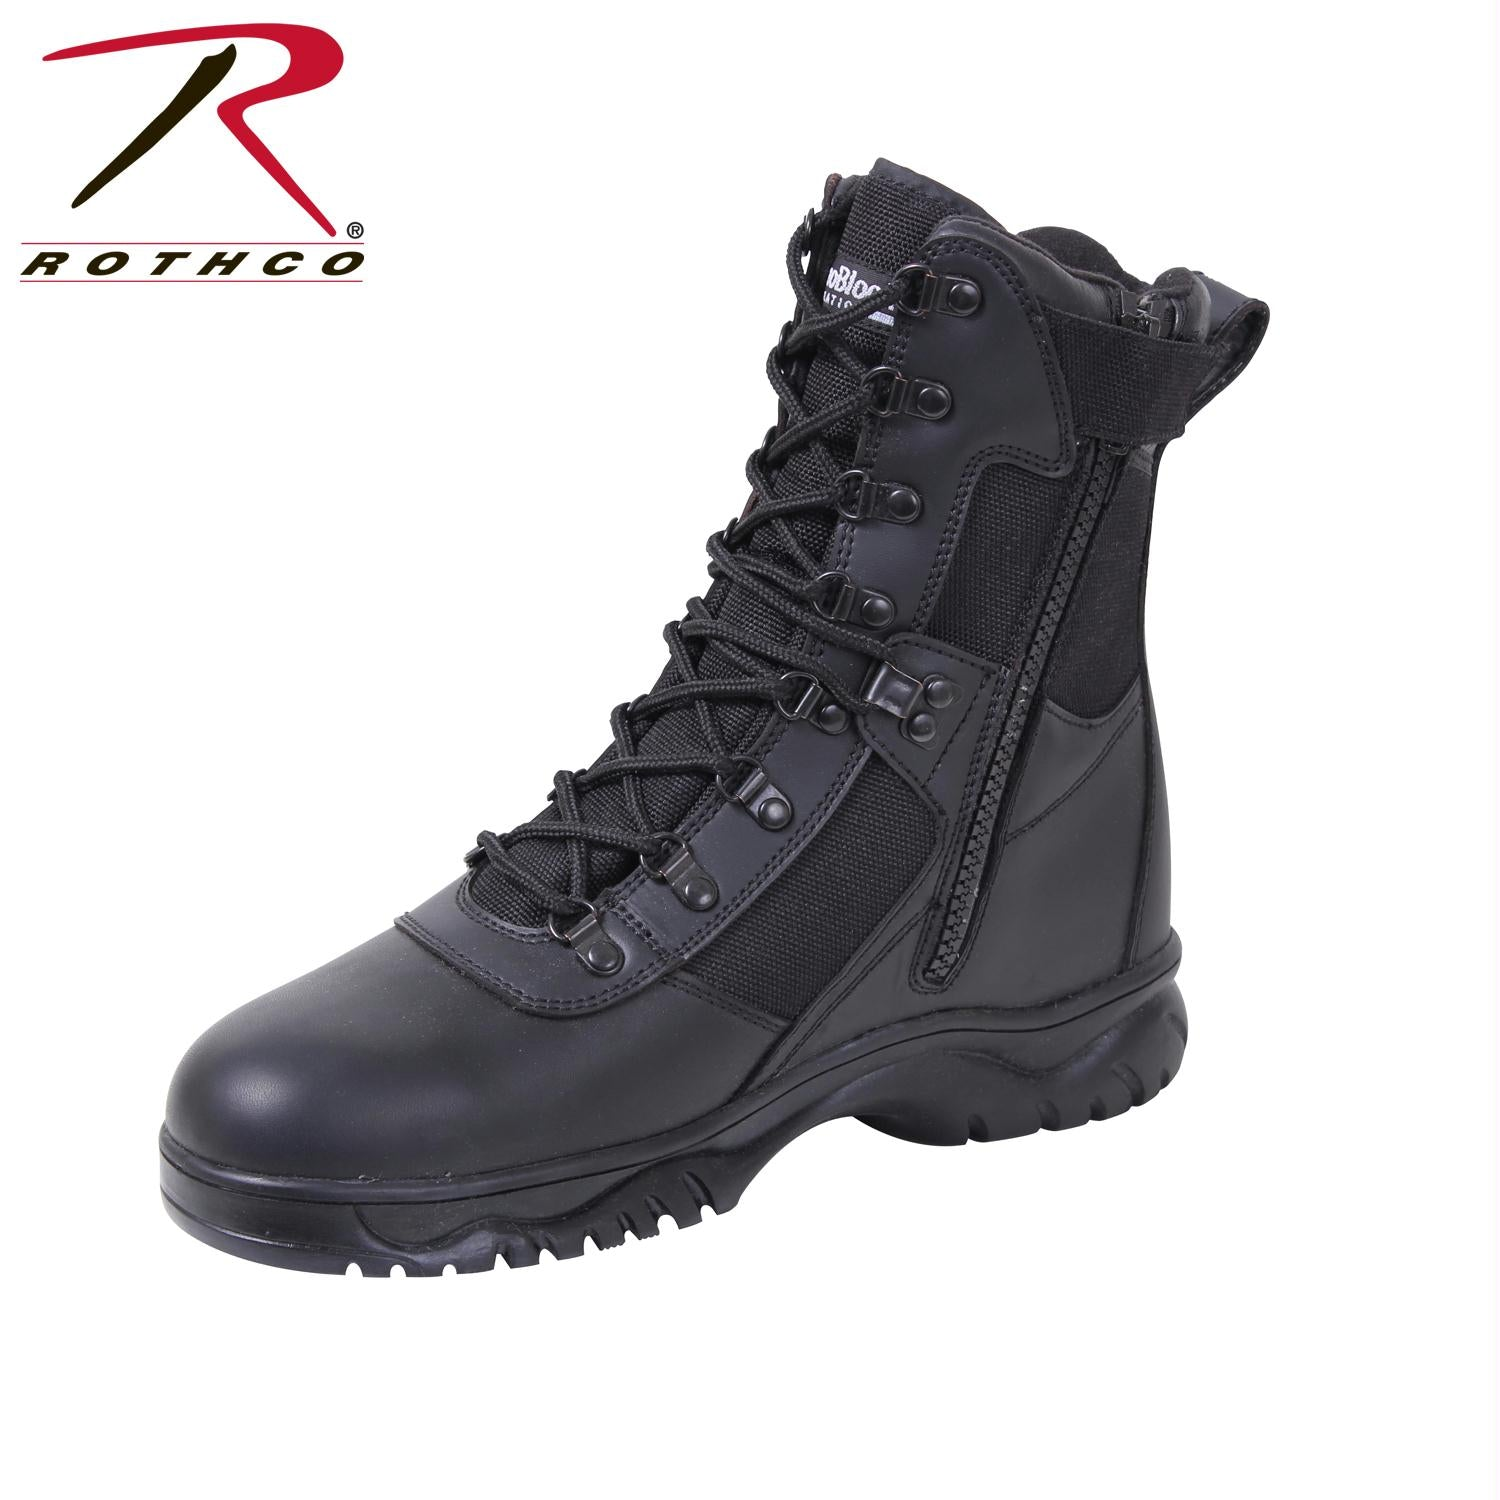 Rothco Insulated 8 Inch Side Zip Tactical Boot - 15